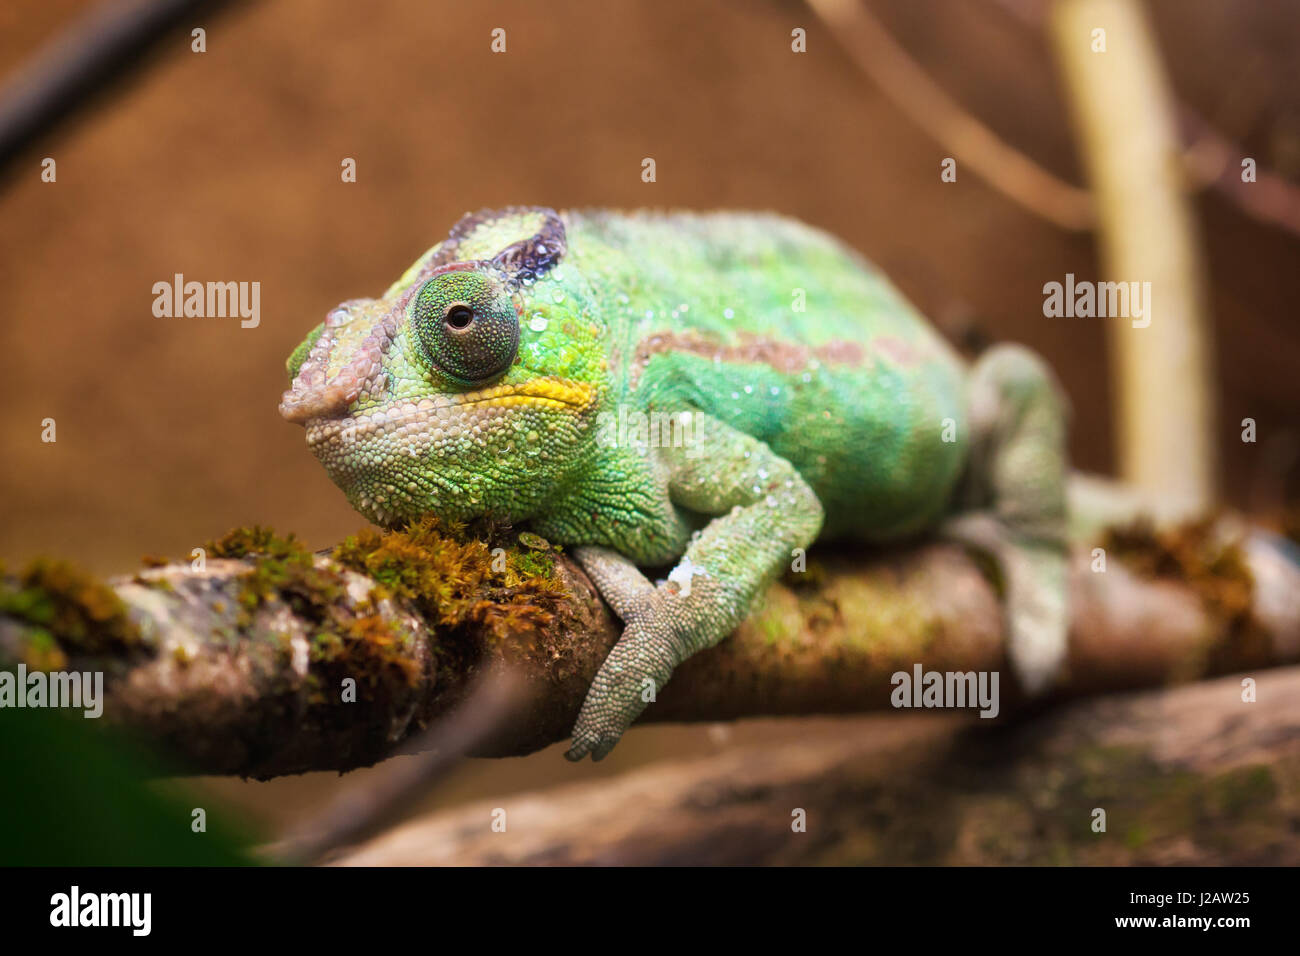 25 amazing chameleon pictures - Close Up Portrait Of A Panther Chameleon Furcifer Pardalis Stock Image